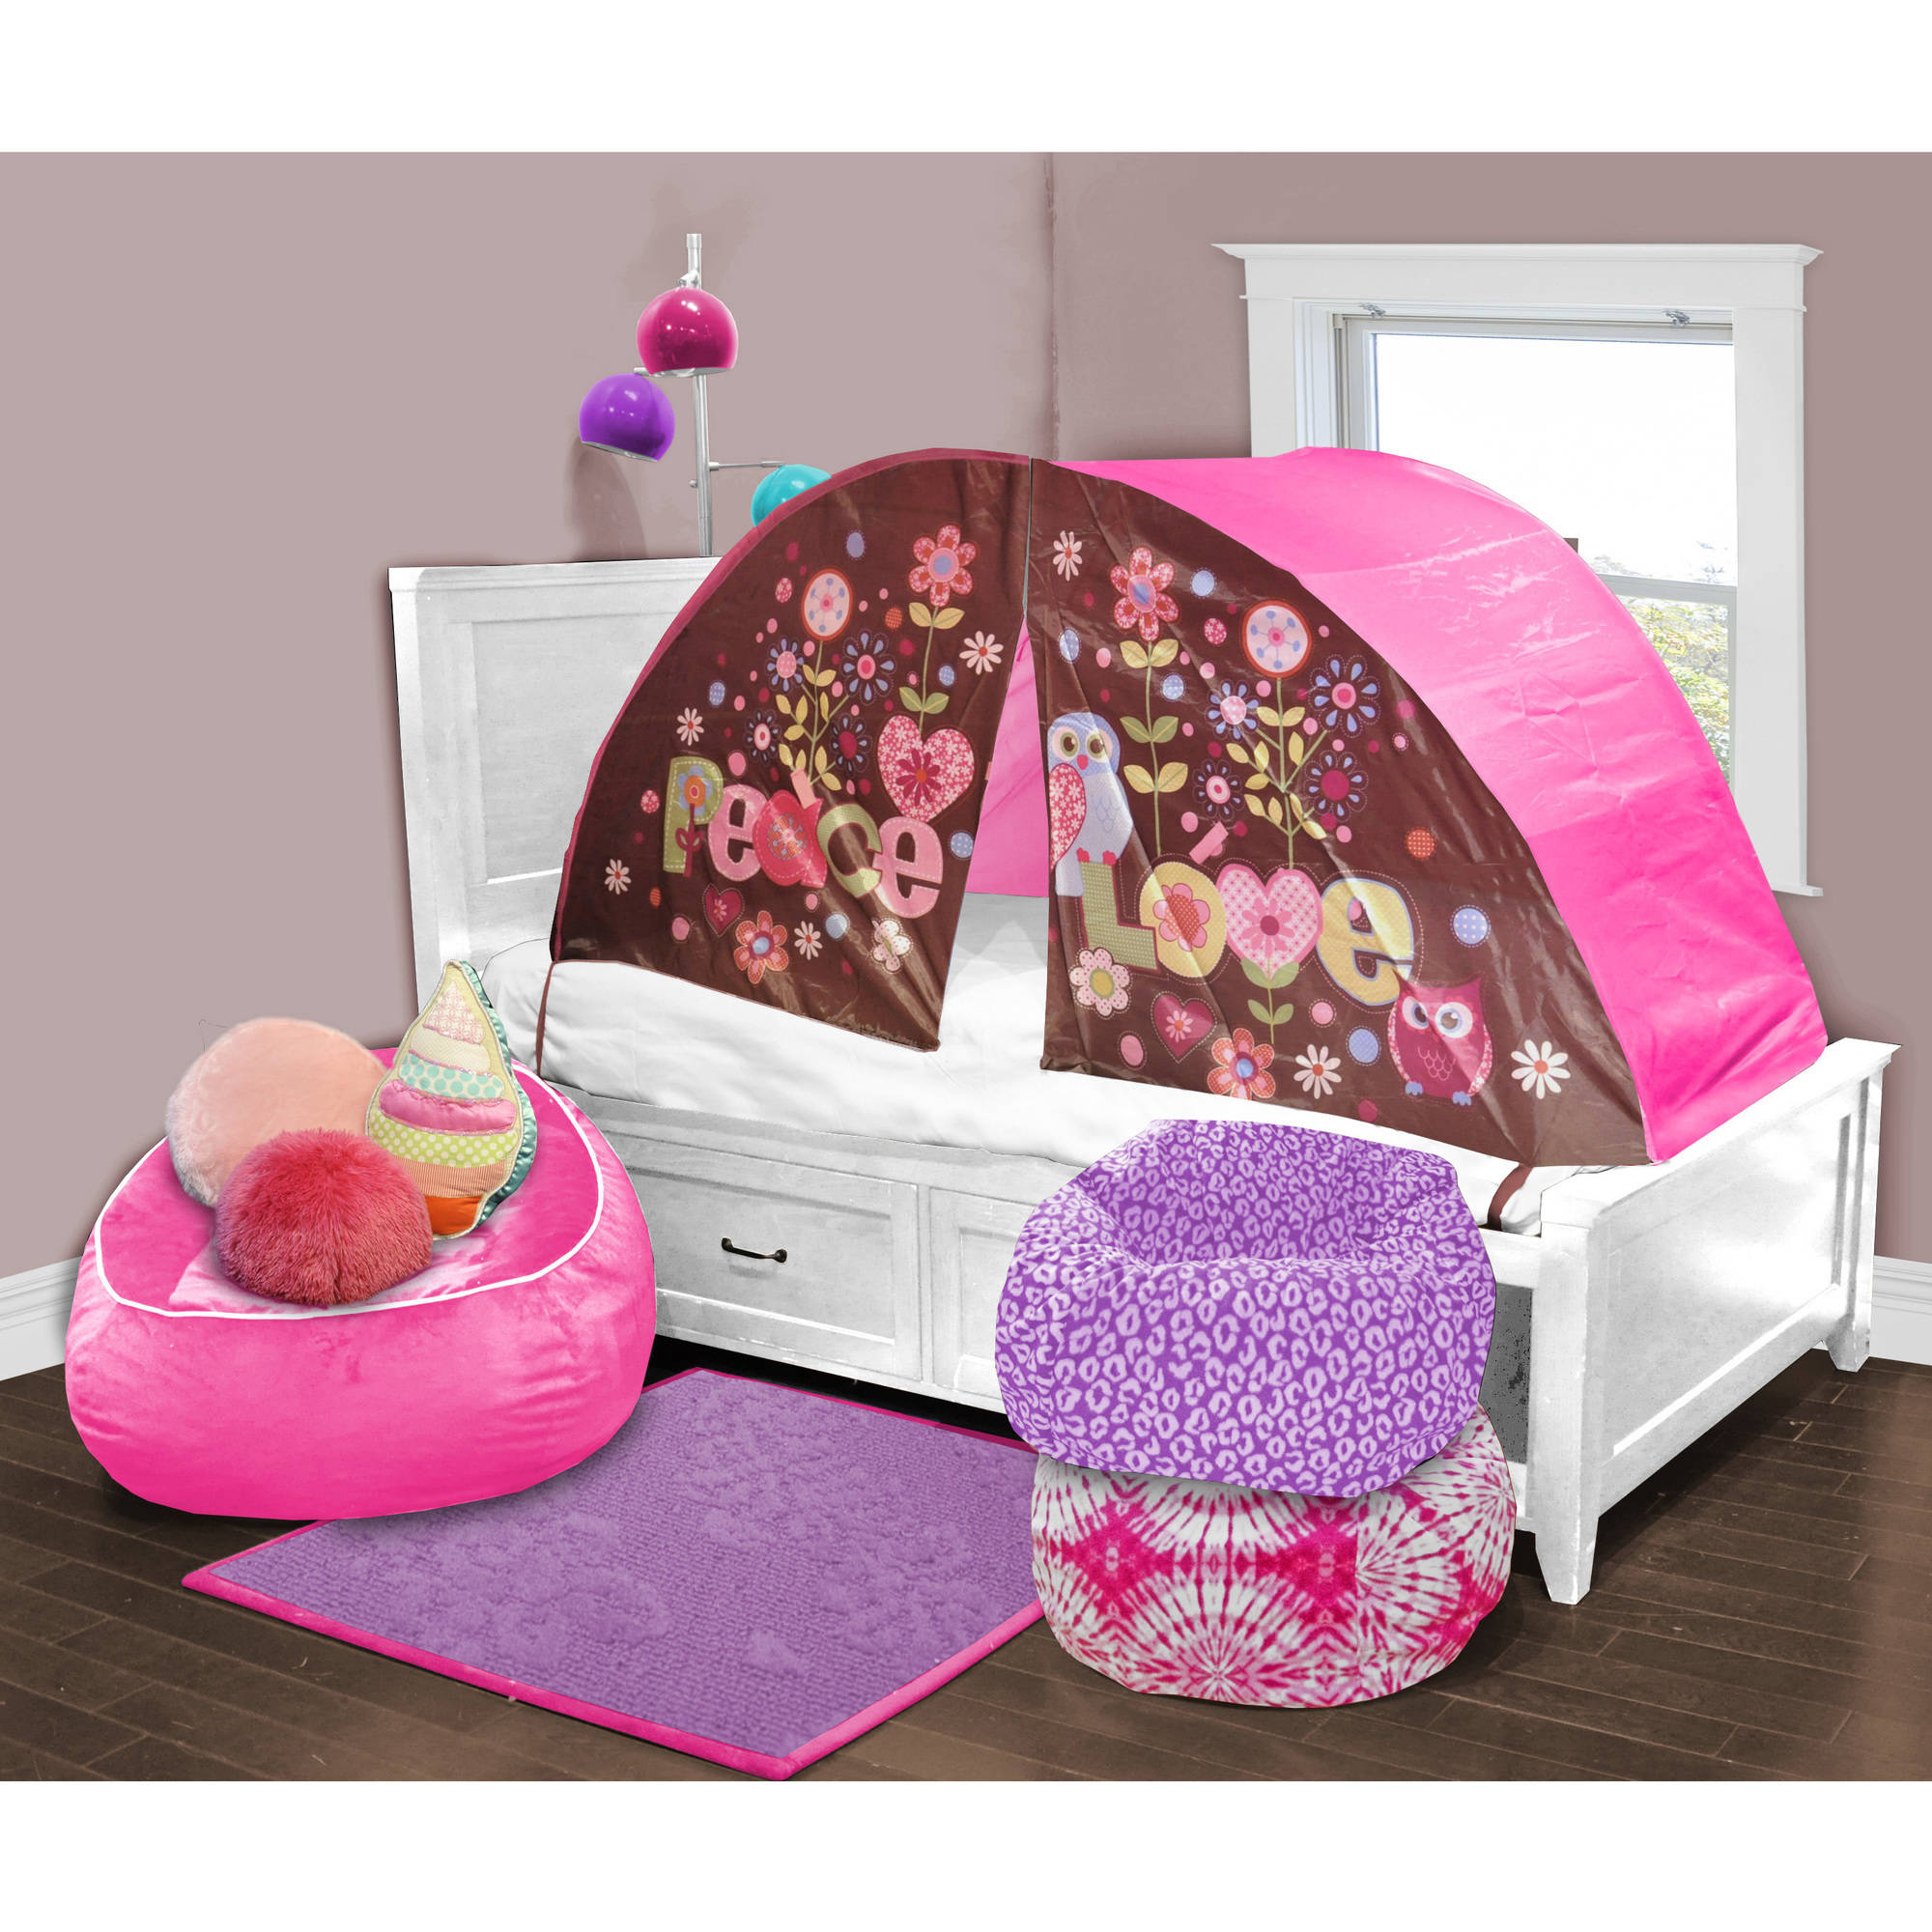 sc 1 st  Walmart : tent on bed - memphite.com